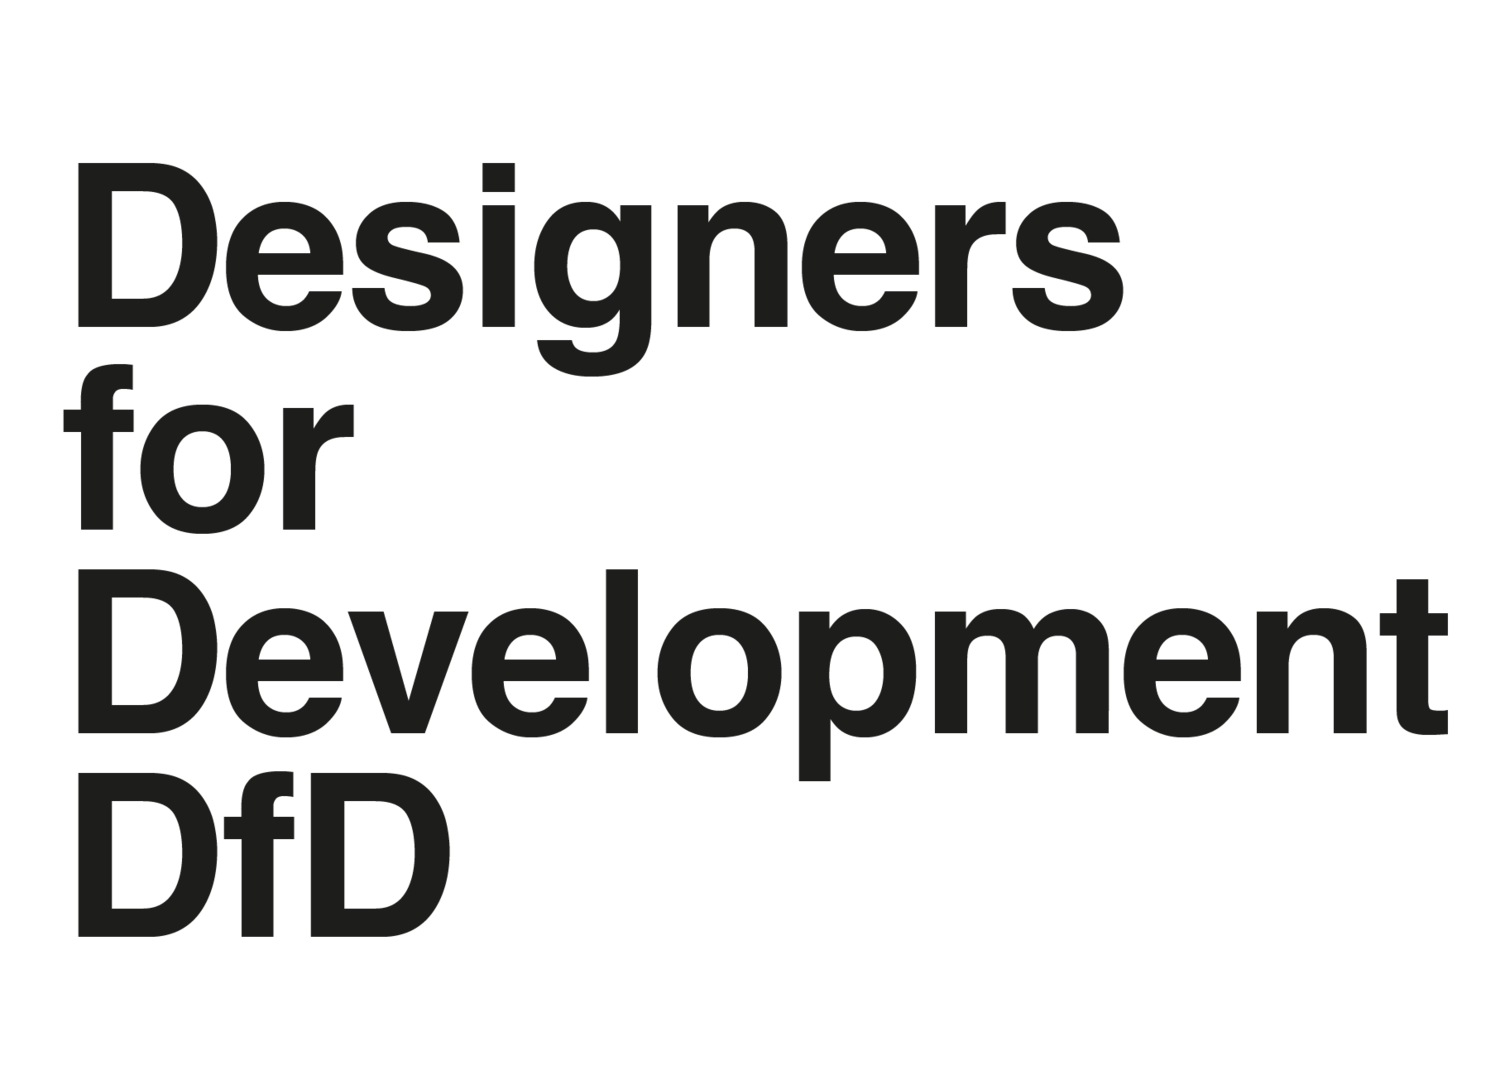 Designers for Development